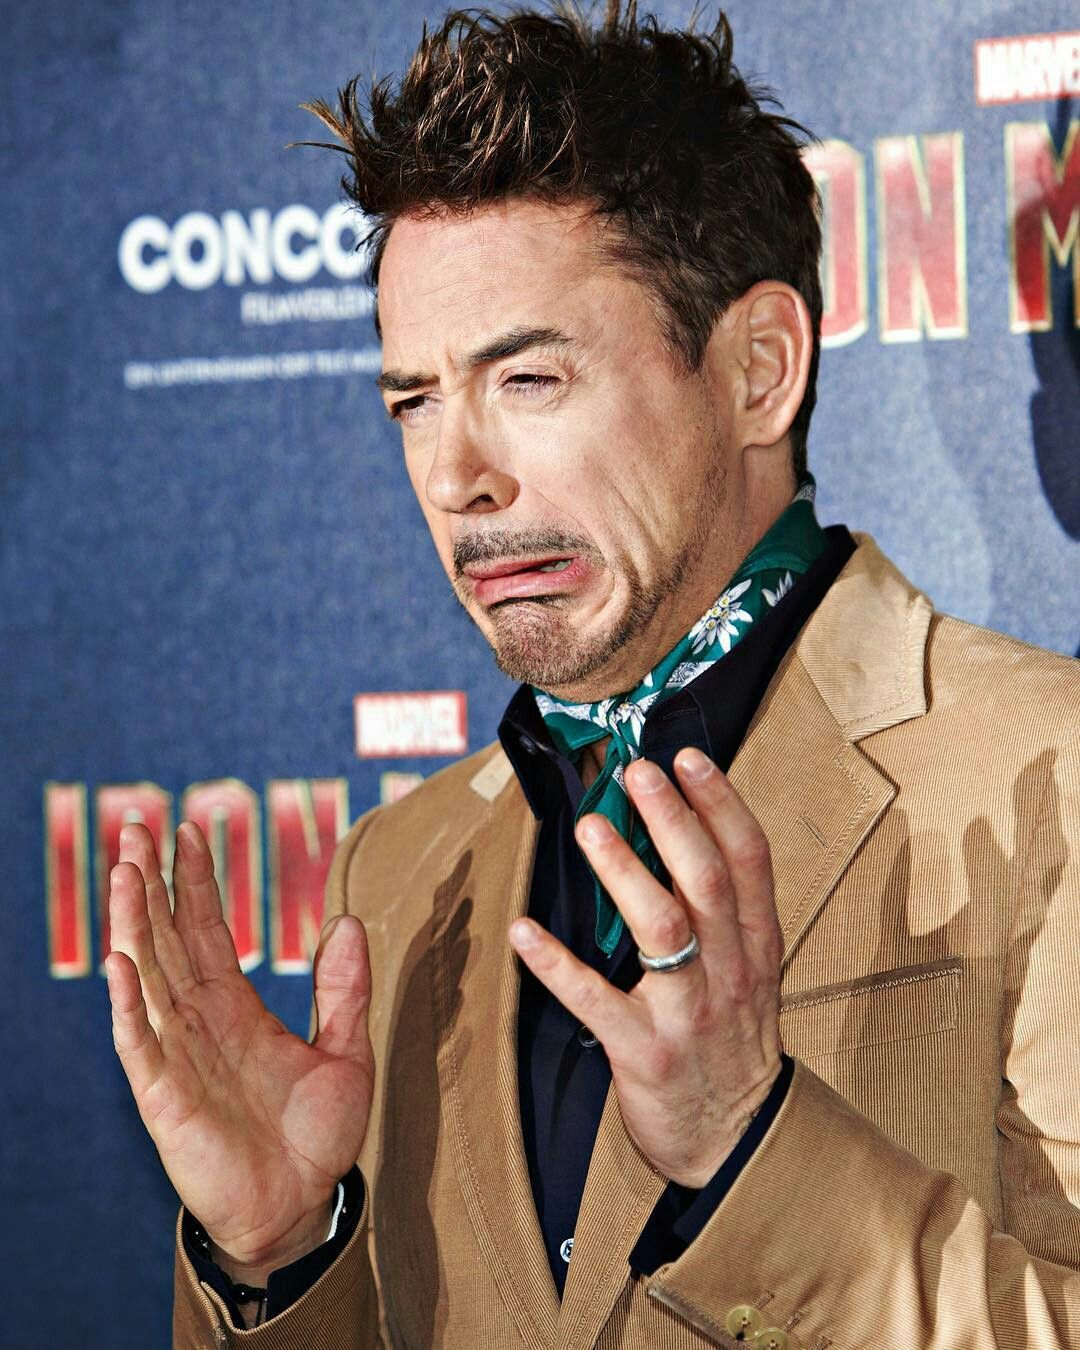 RDJ. What were you thinking about? Lol Robert downey jr